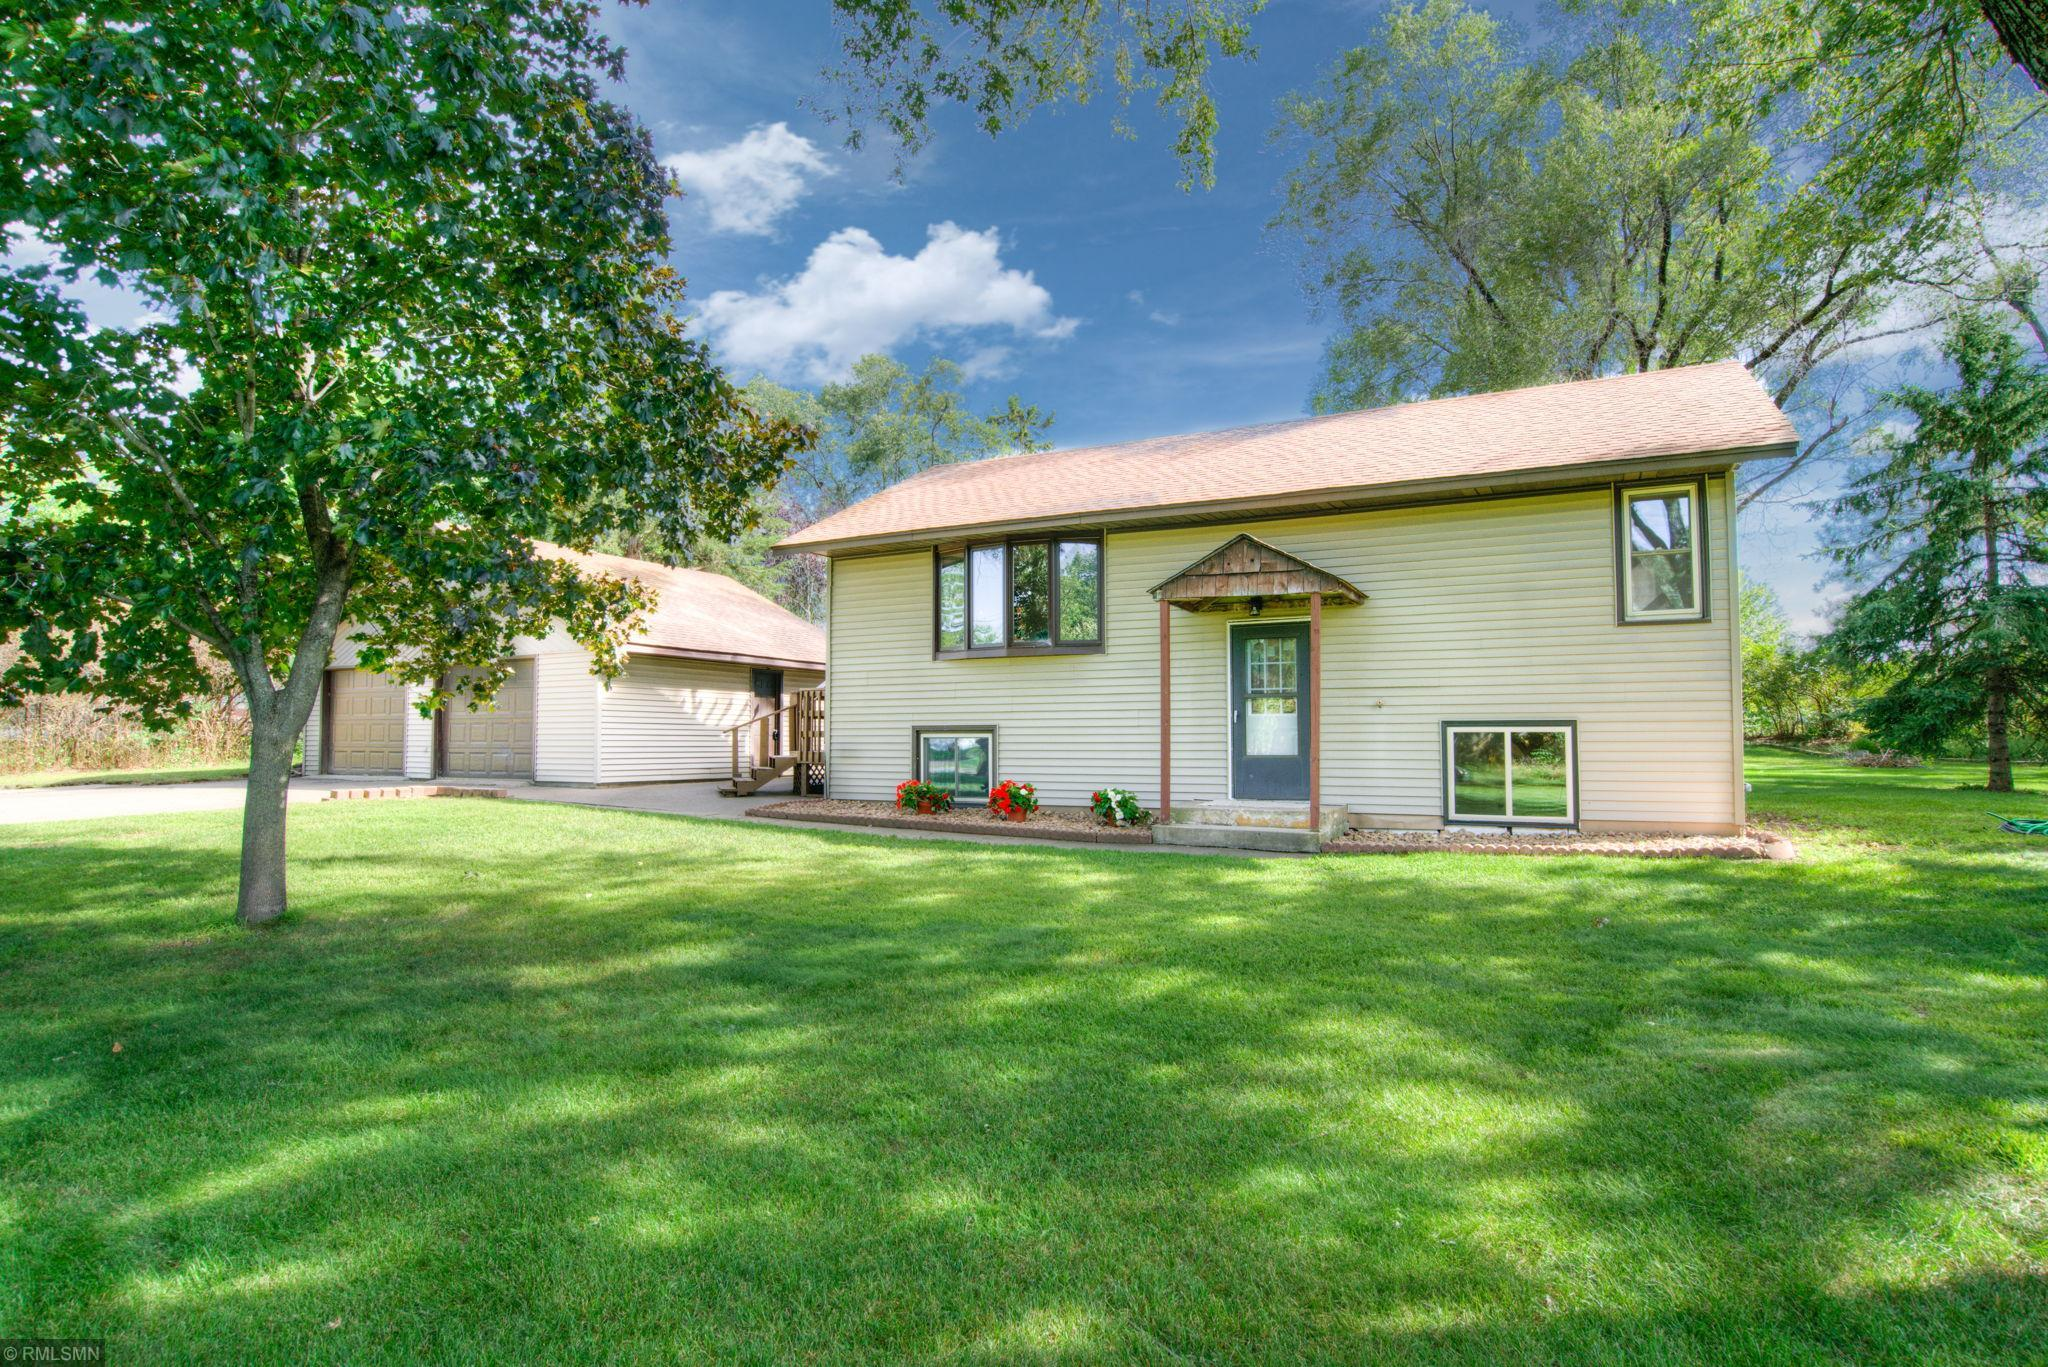 1730 131st Avenue NW Property Photo - Coon Rapids, MN real estate listing